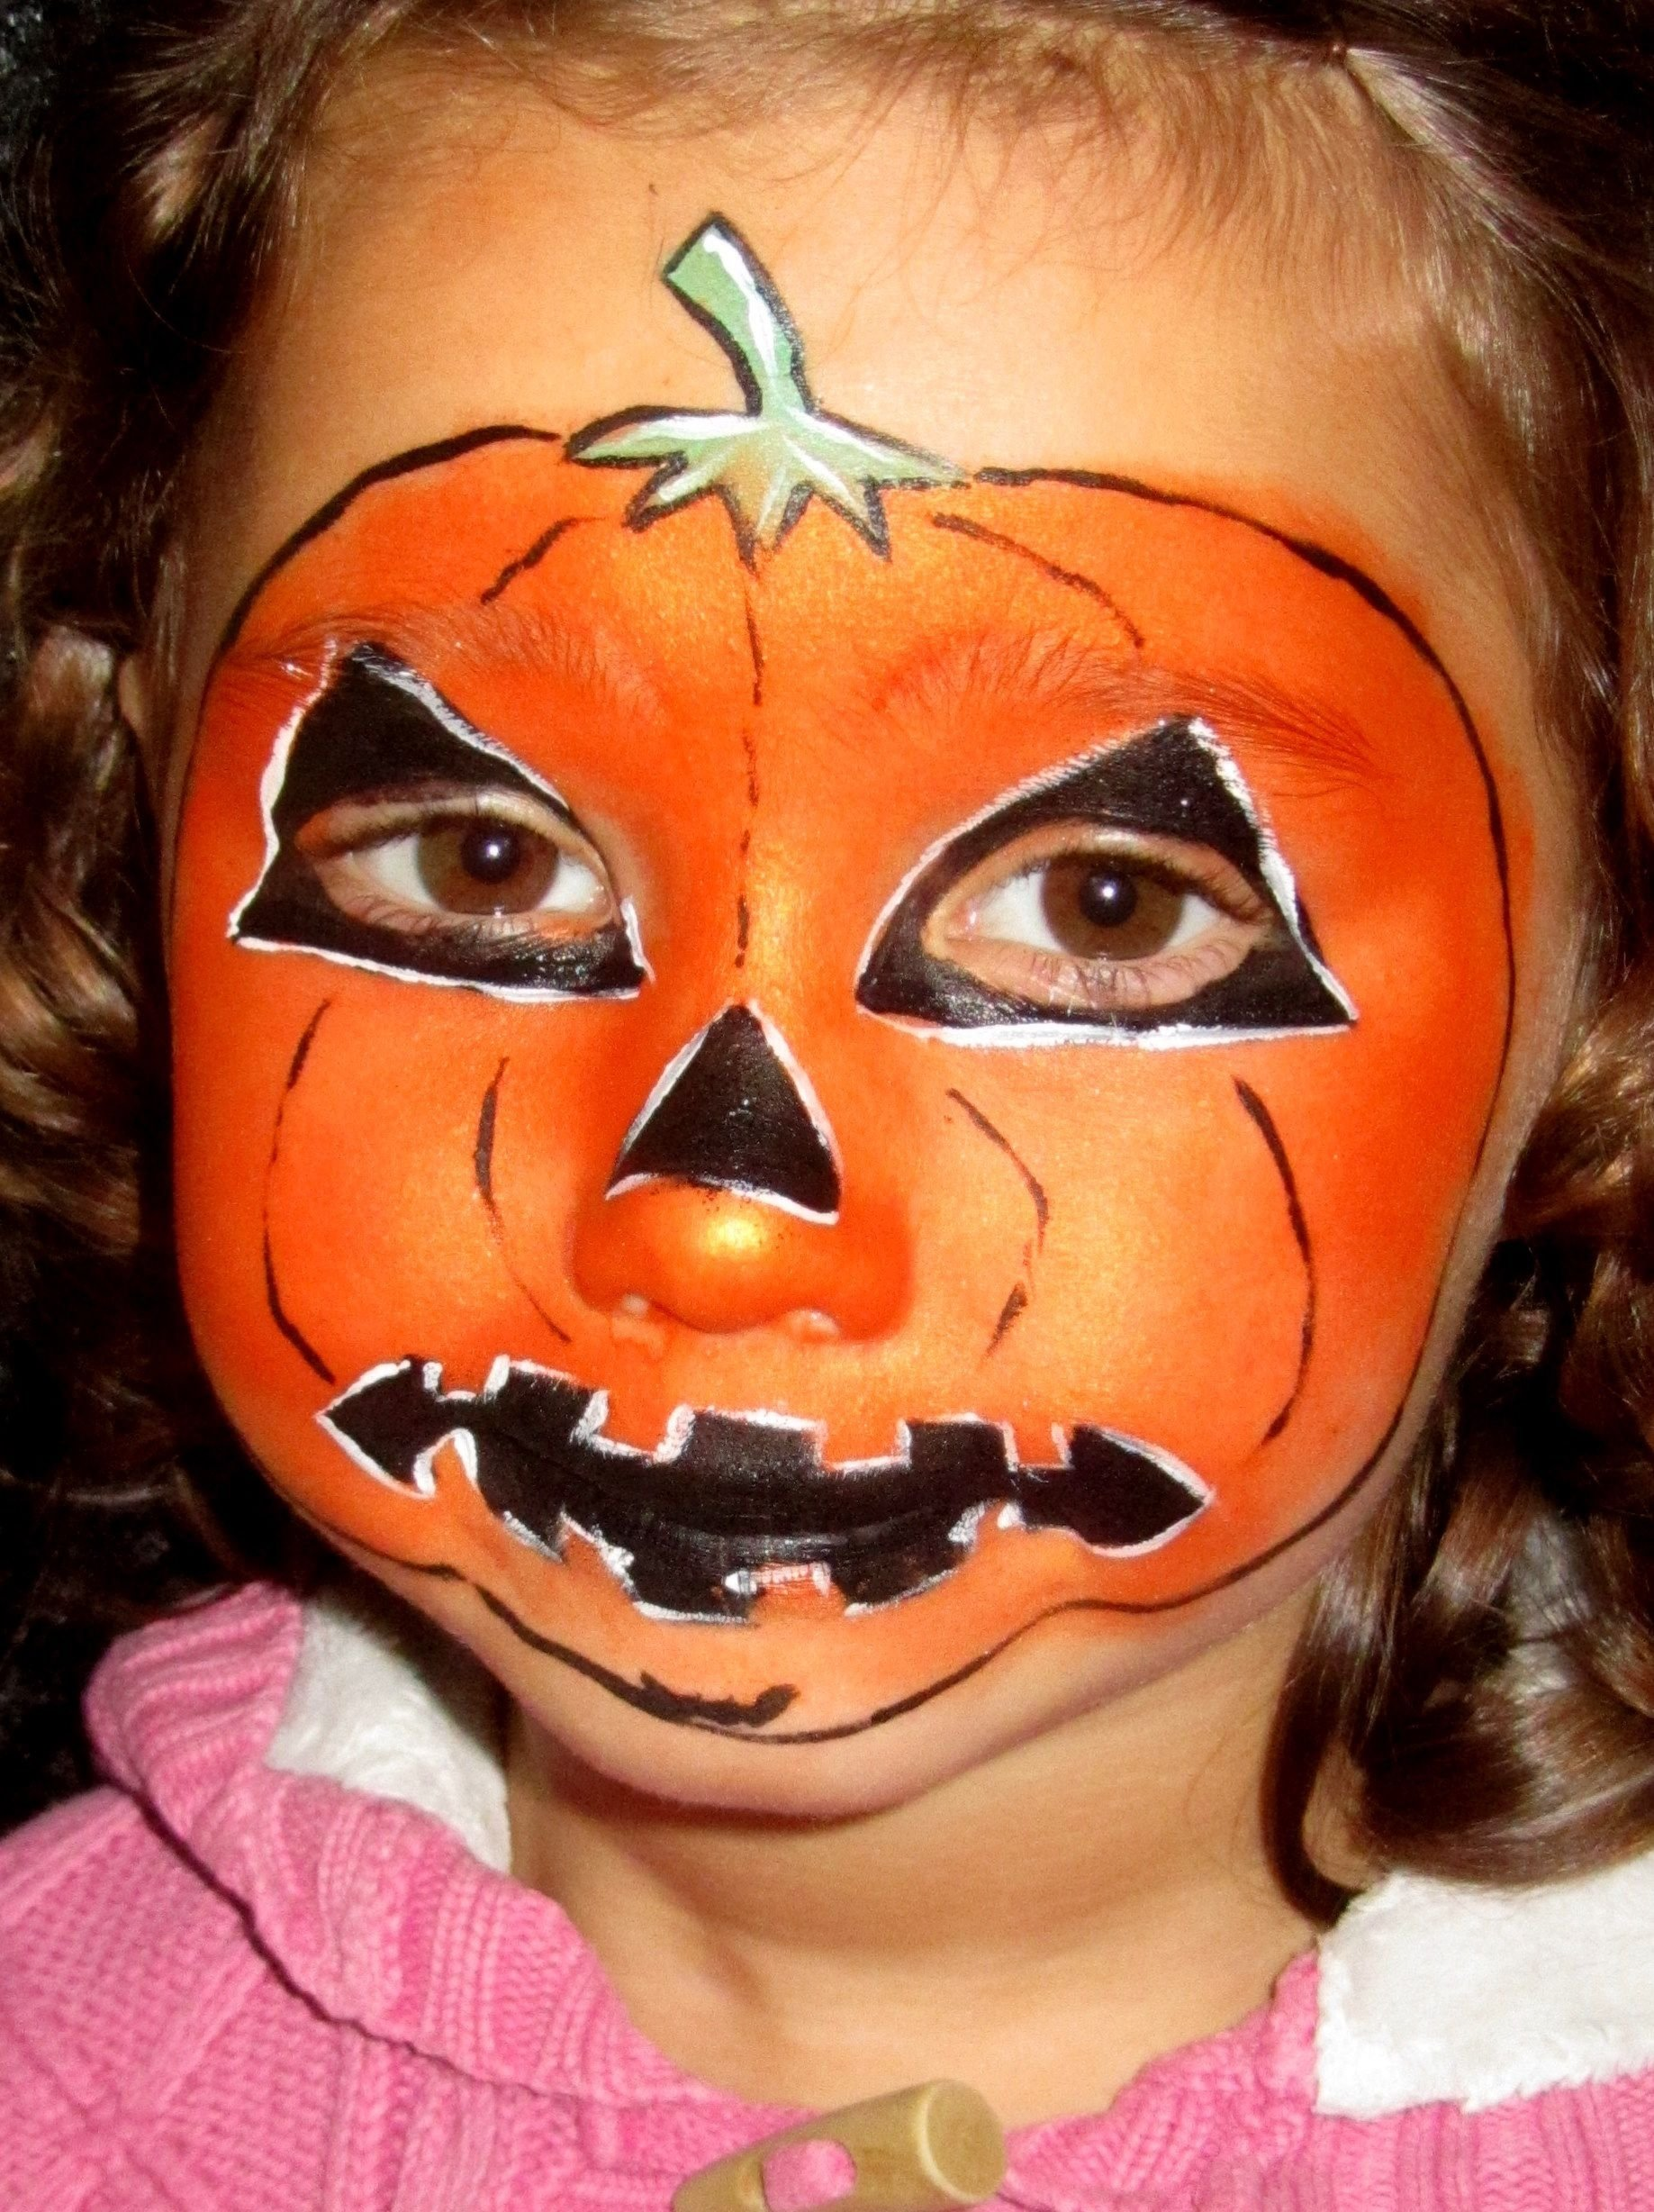 10 Amazing Simple Halloween Face Painting Ideas For Kids halloween face paint design ideas celebration halloween face 5 2020